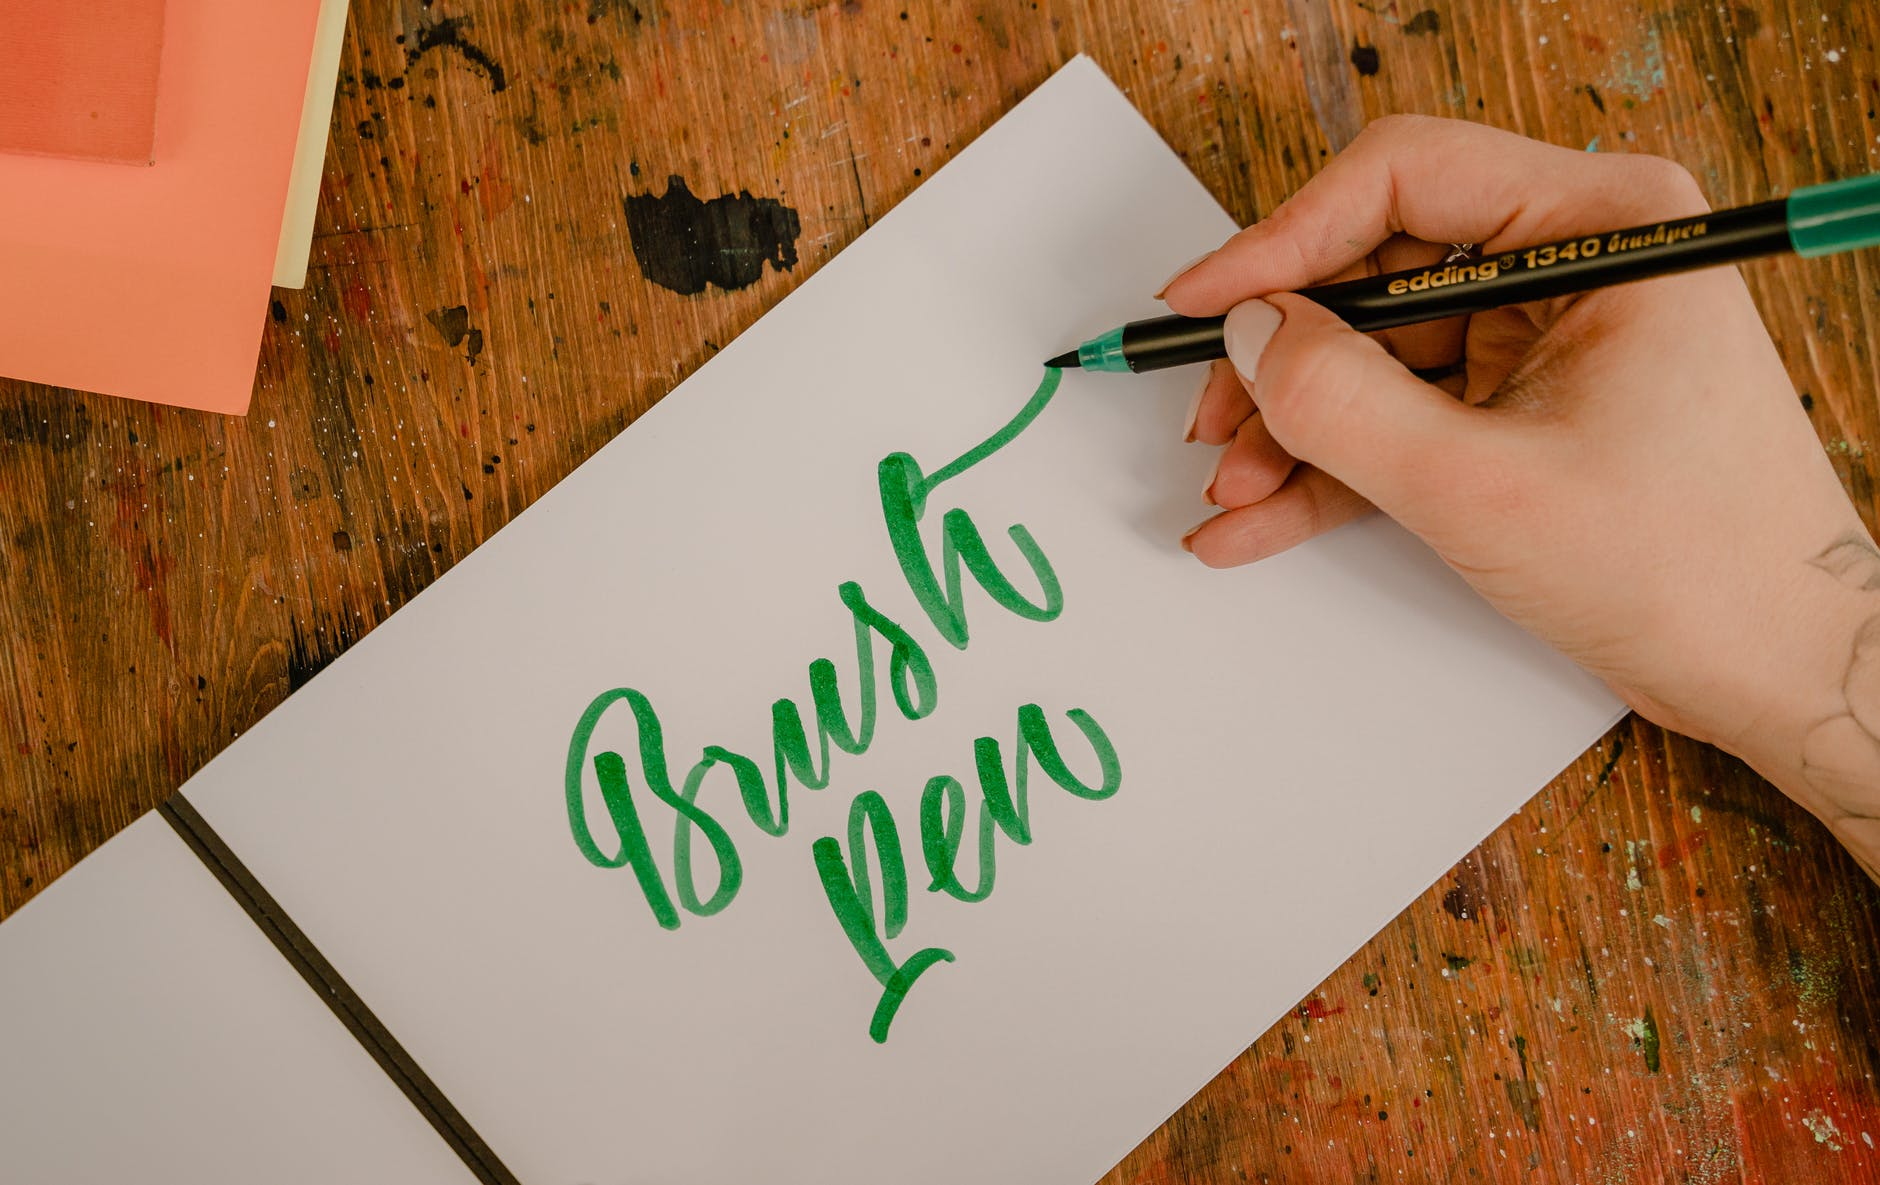 can brush pens be used on canvas